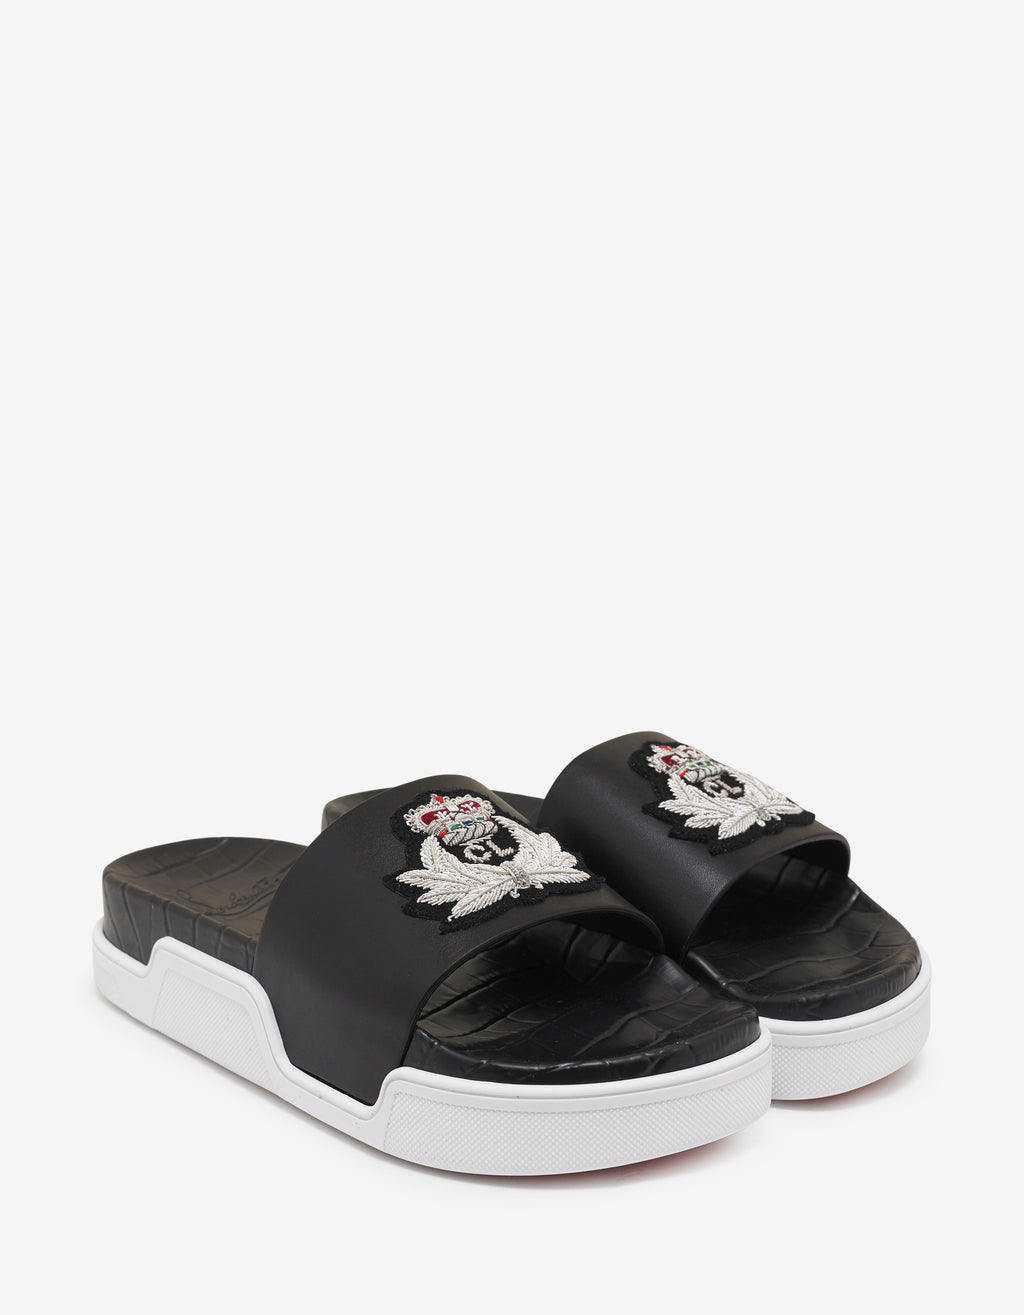 Pool Beau Flat Black Slide Sandals